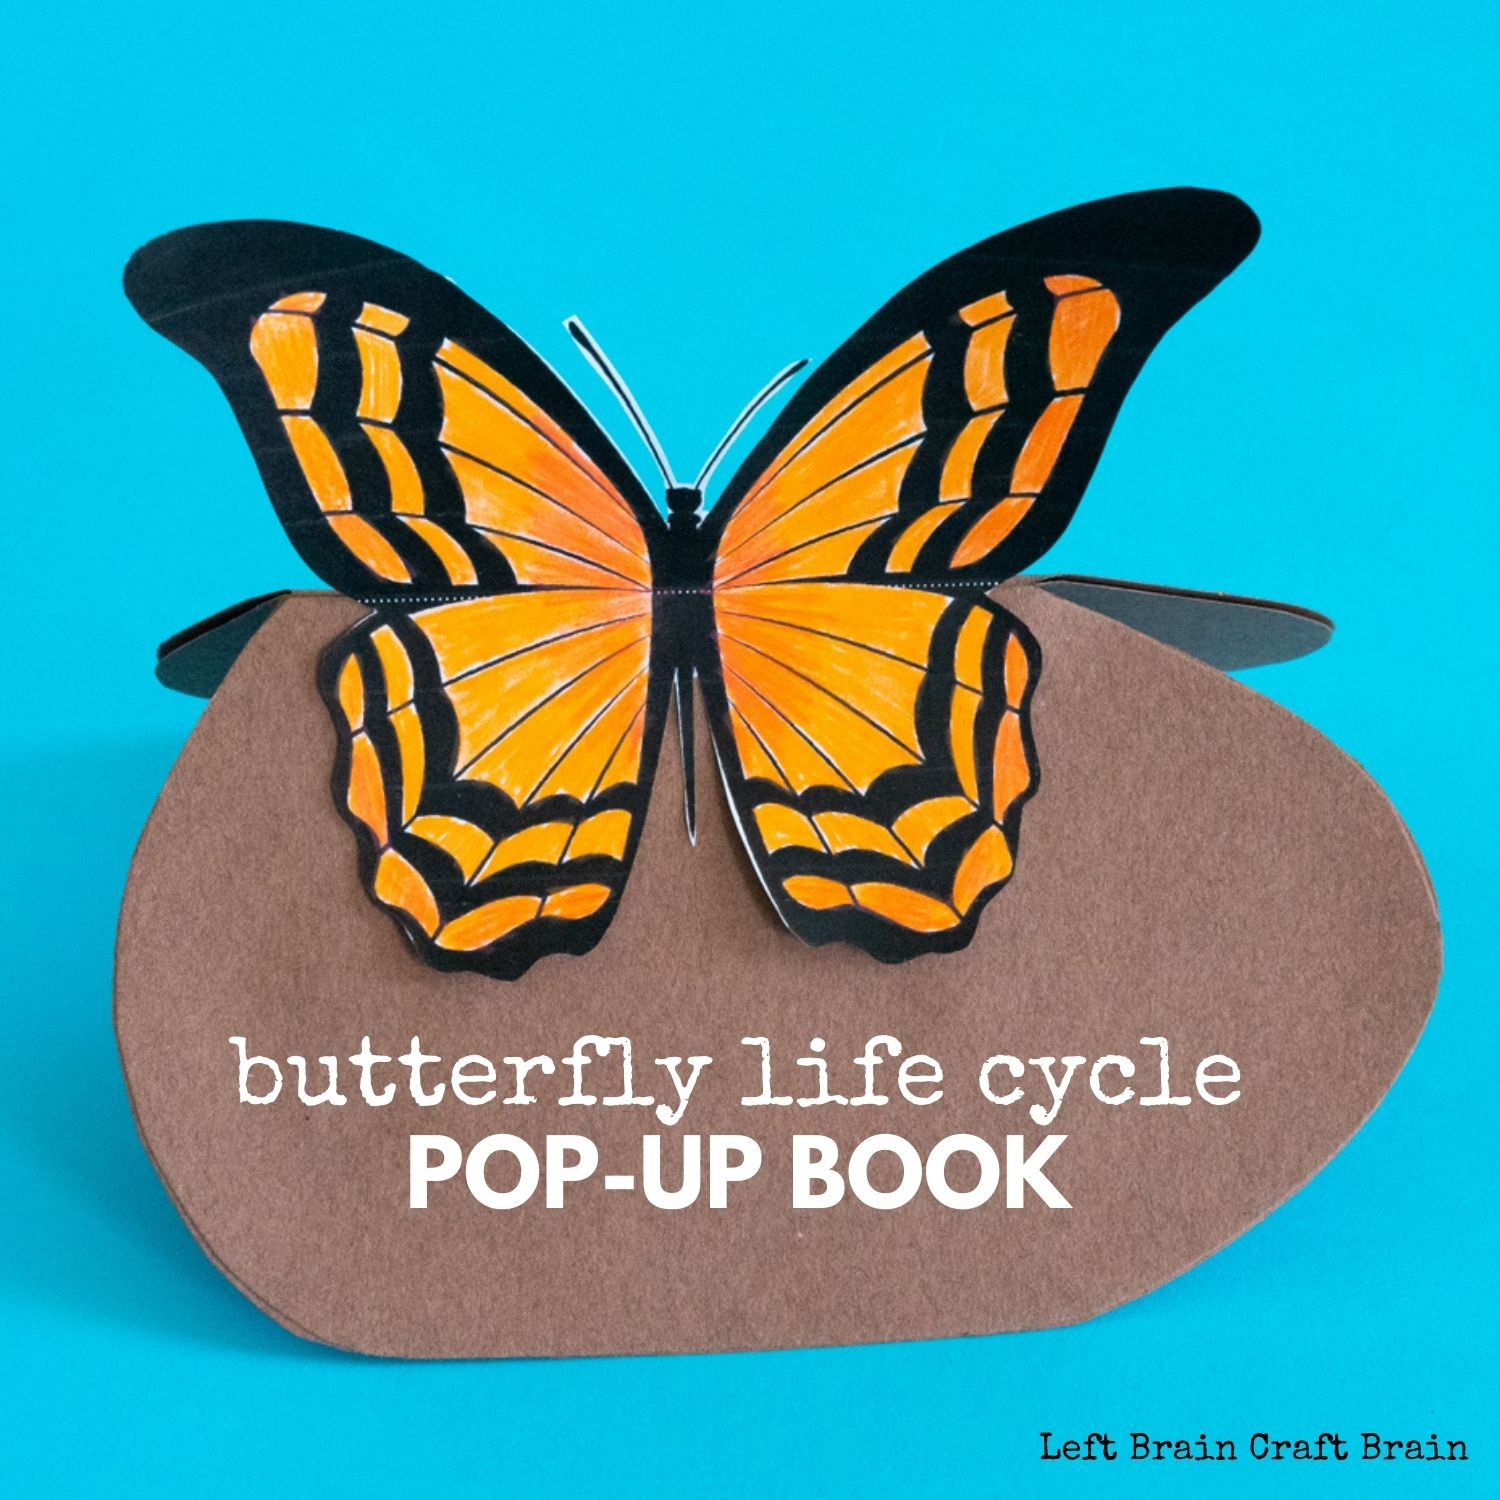 Learn about the butterfly life cycle with a fun pop-up book! It's a perfect STEAM activity for school or homeschool.